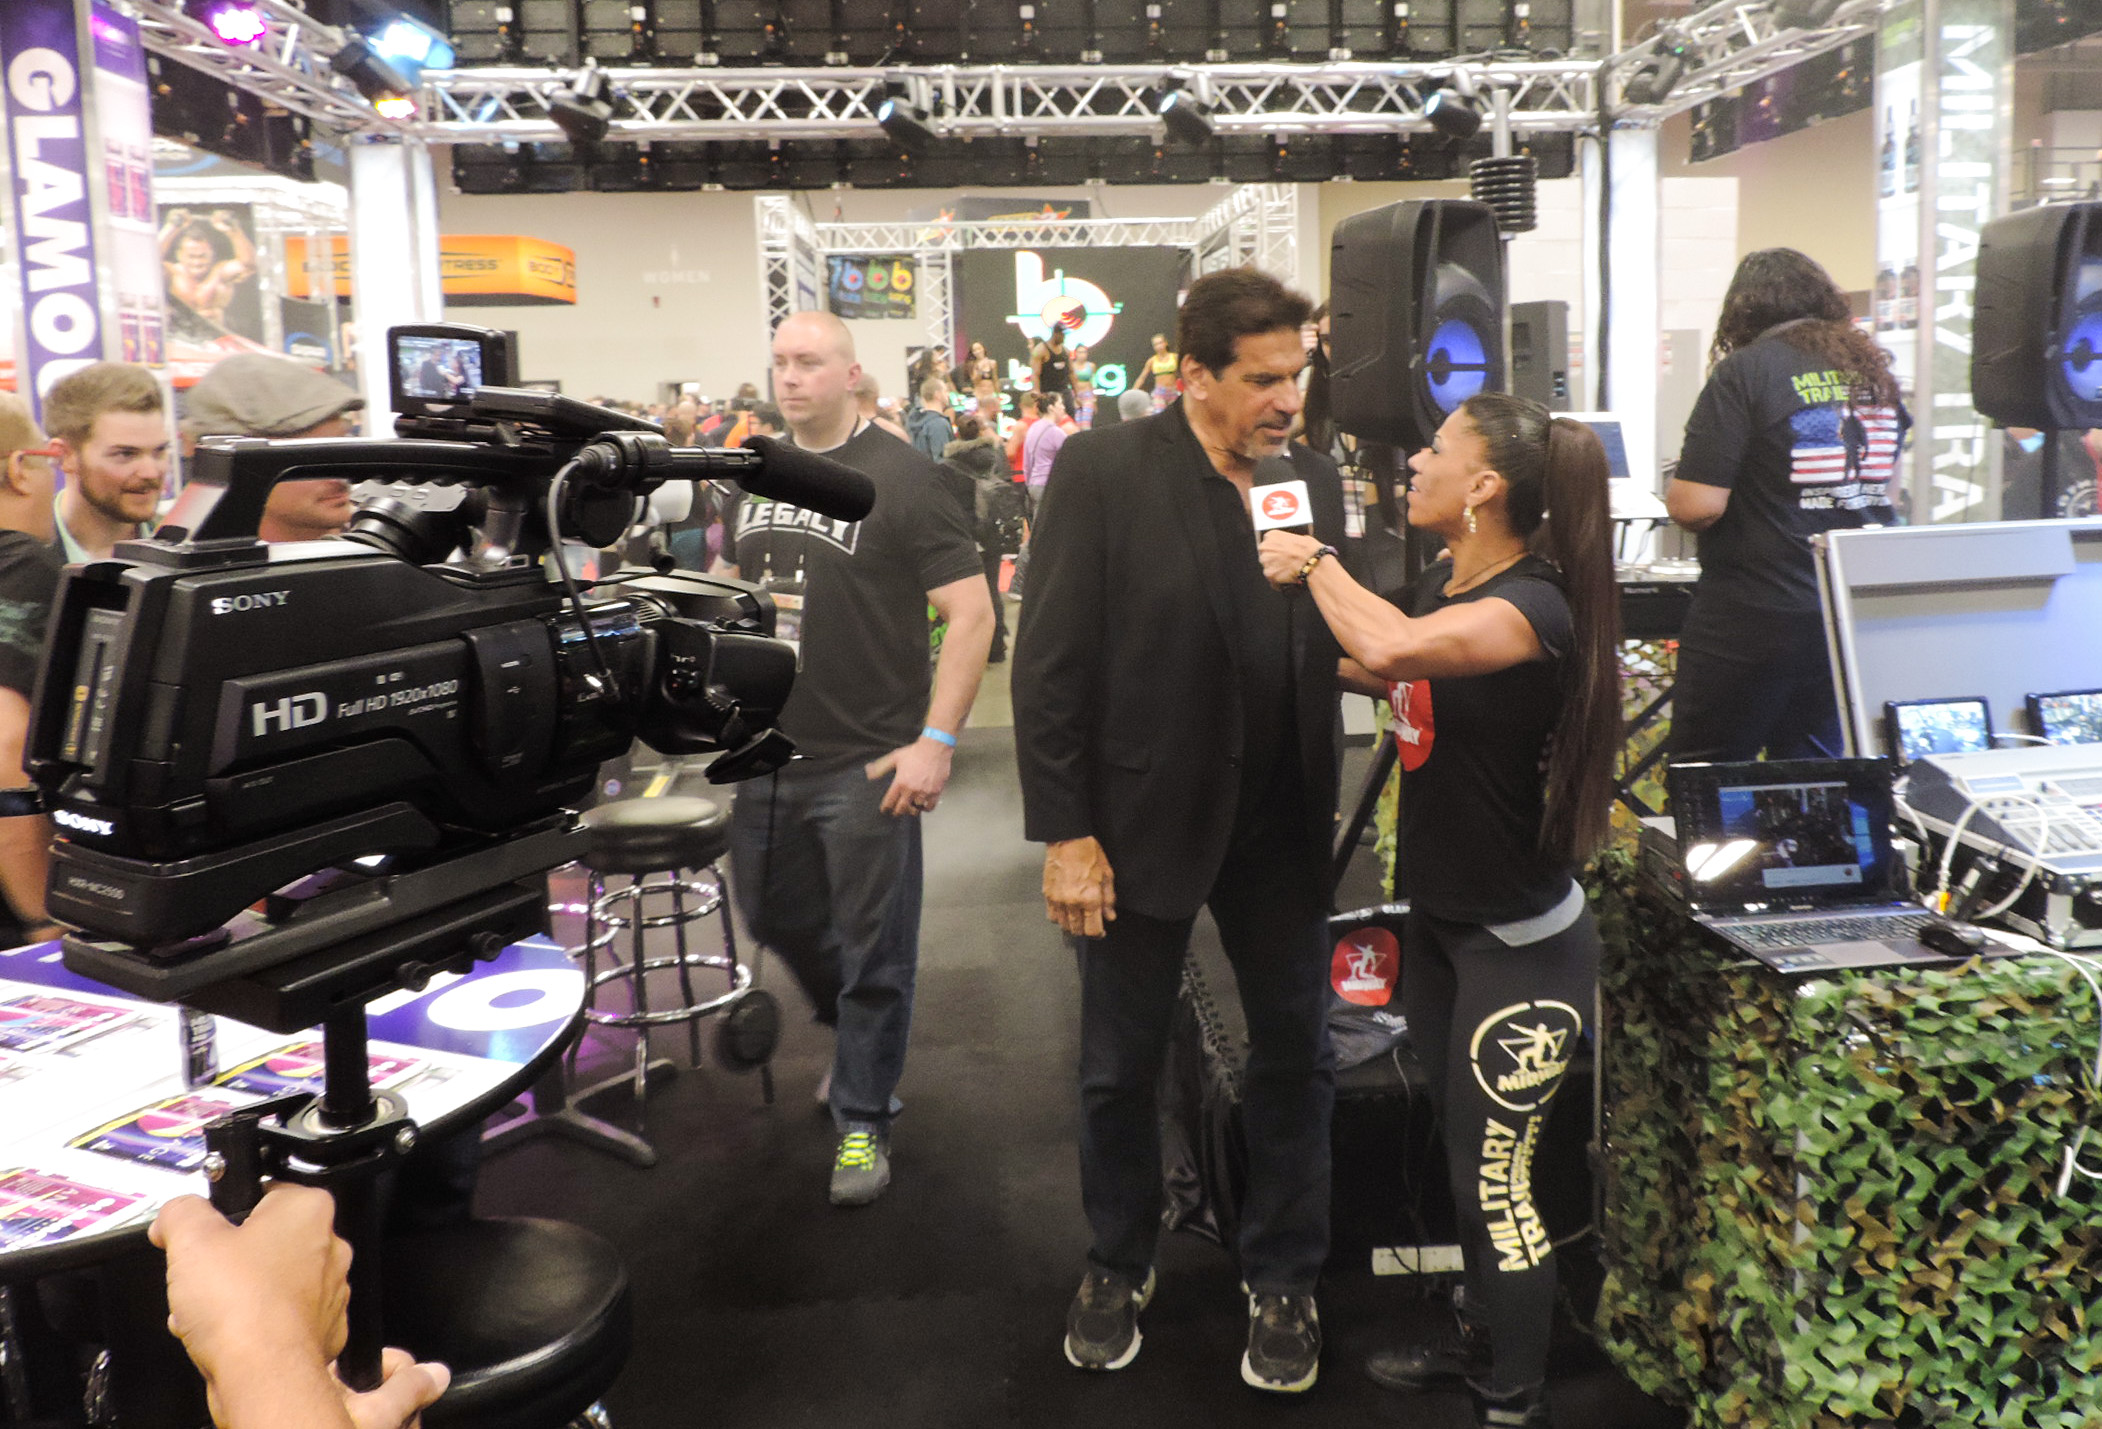 Lou Ferrigno being interviewed by Midway Labs team member.